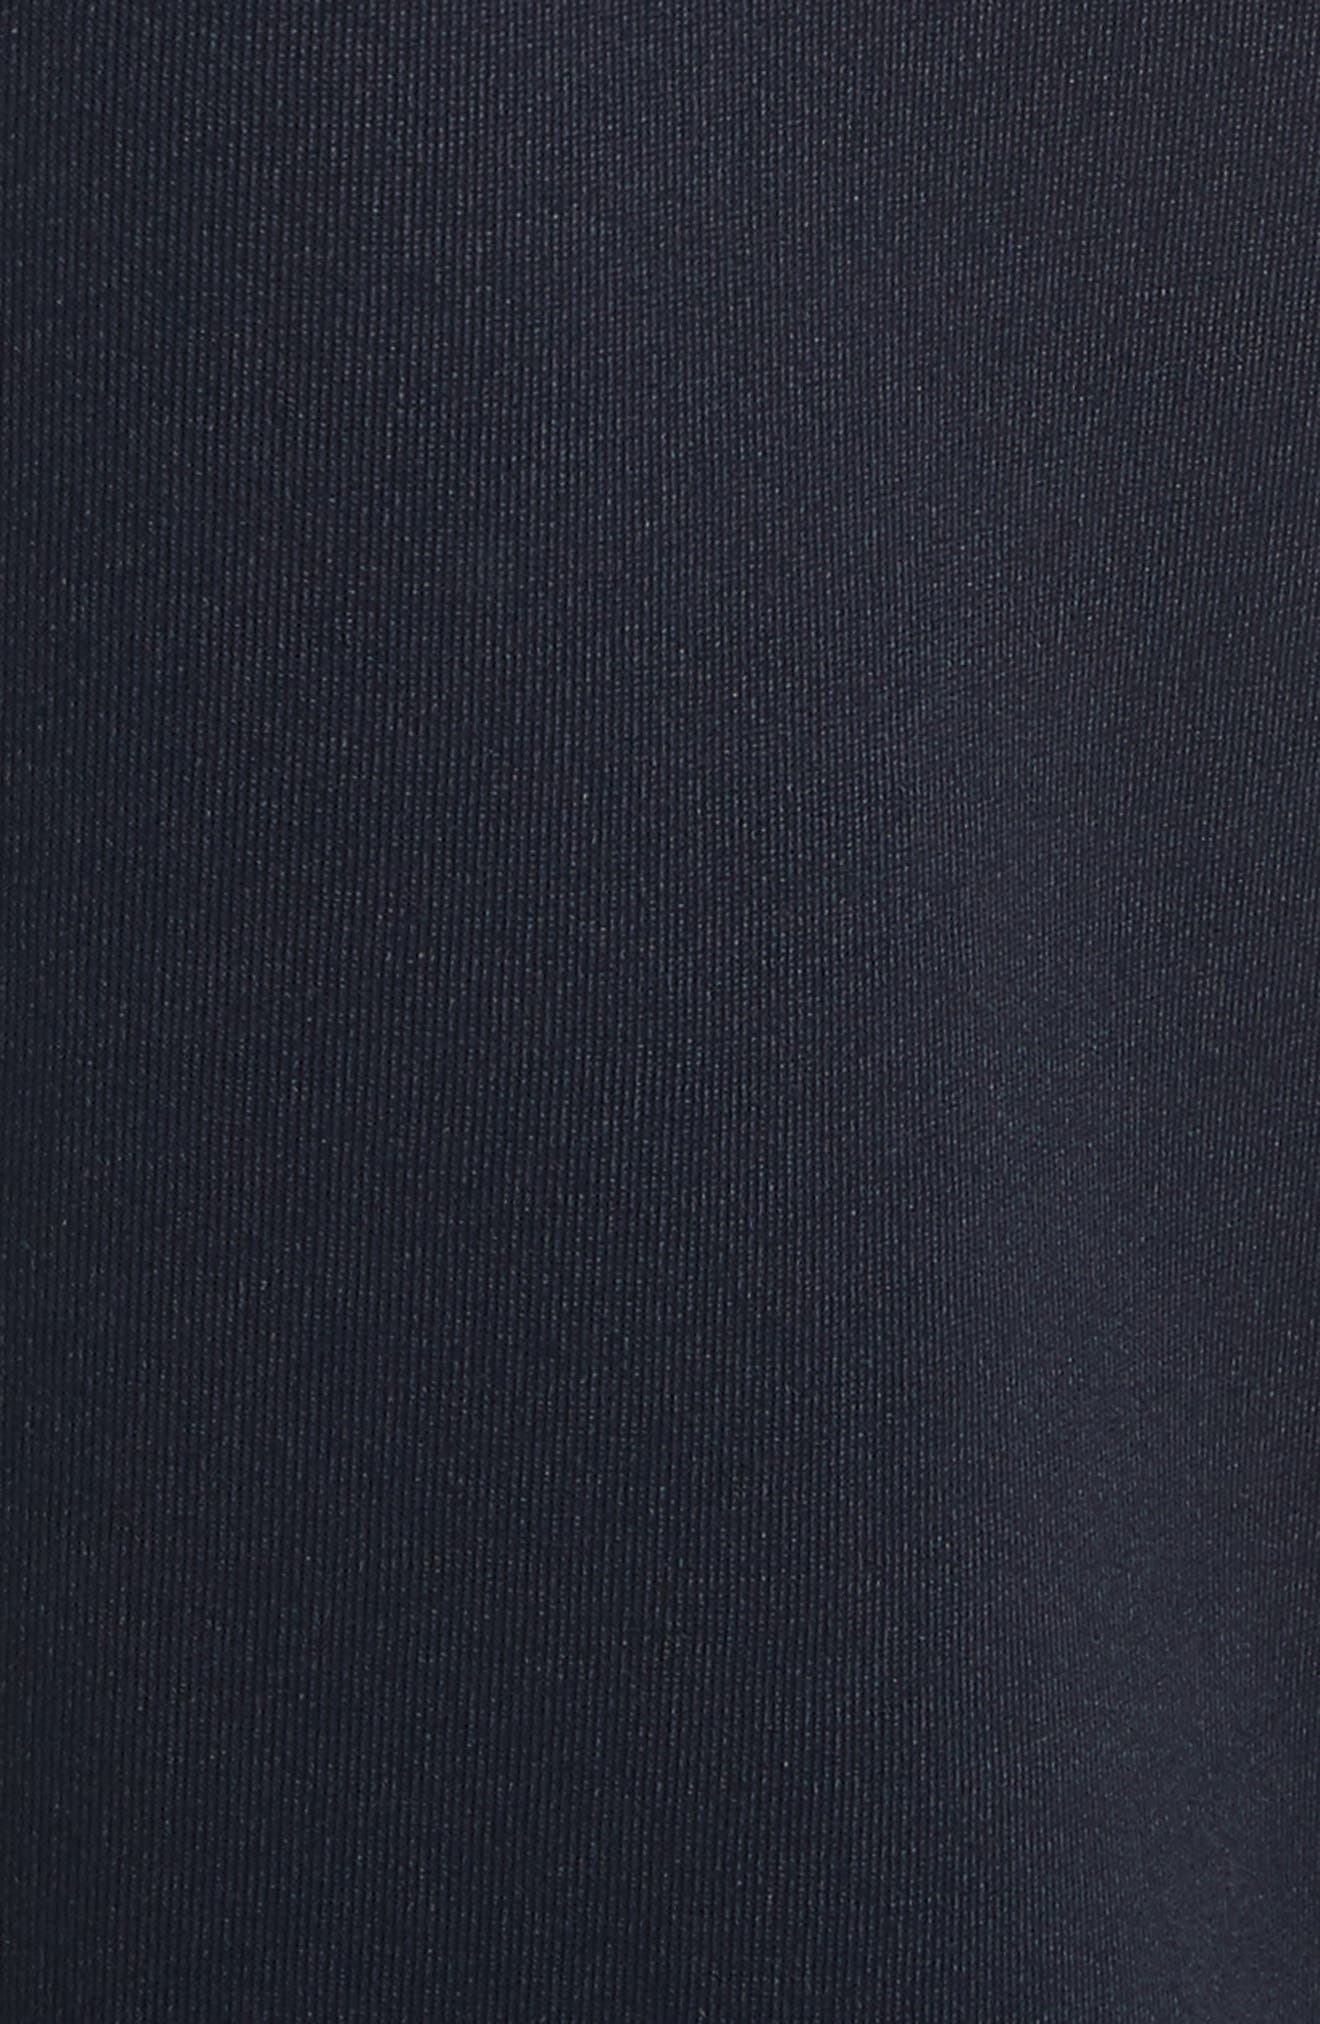 x adidas Cropped Track Pants,                             Alternate thumbnail 6, color,                             Navy